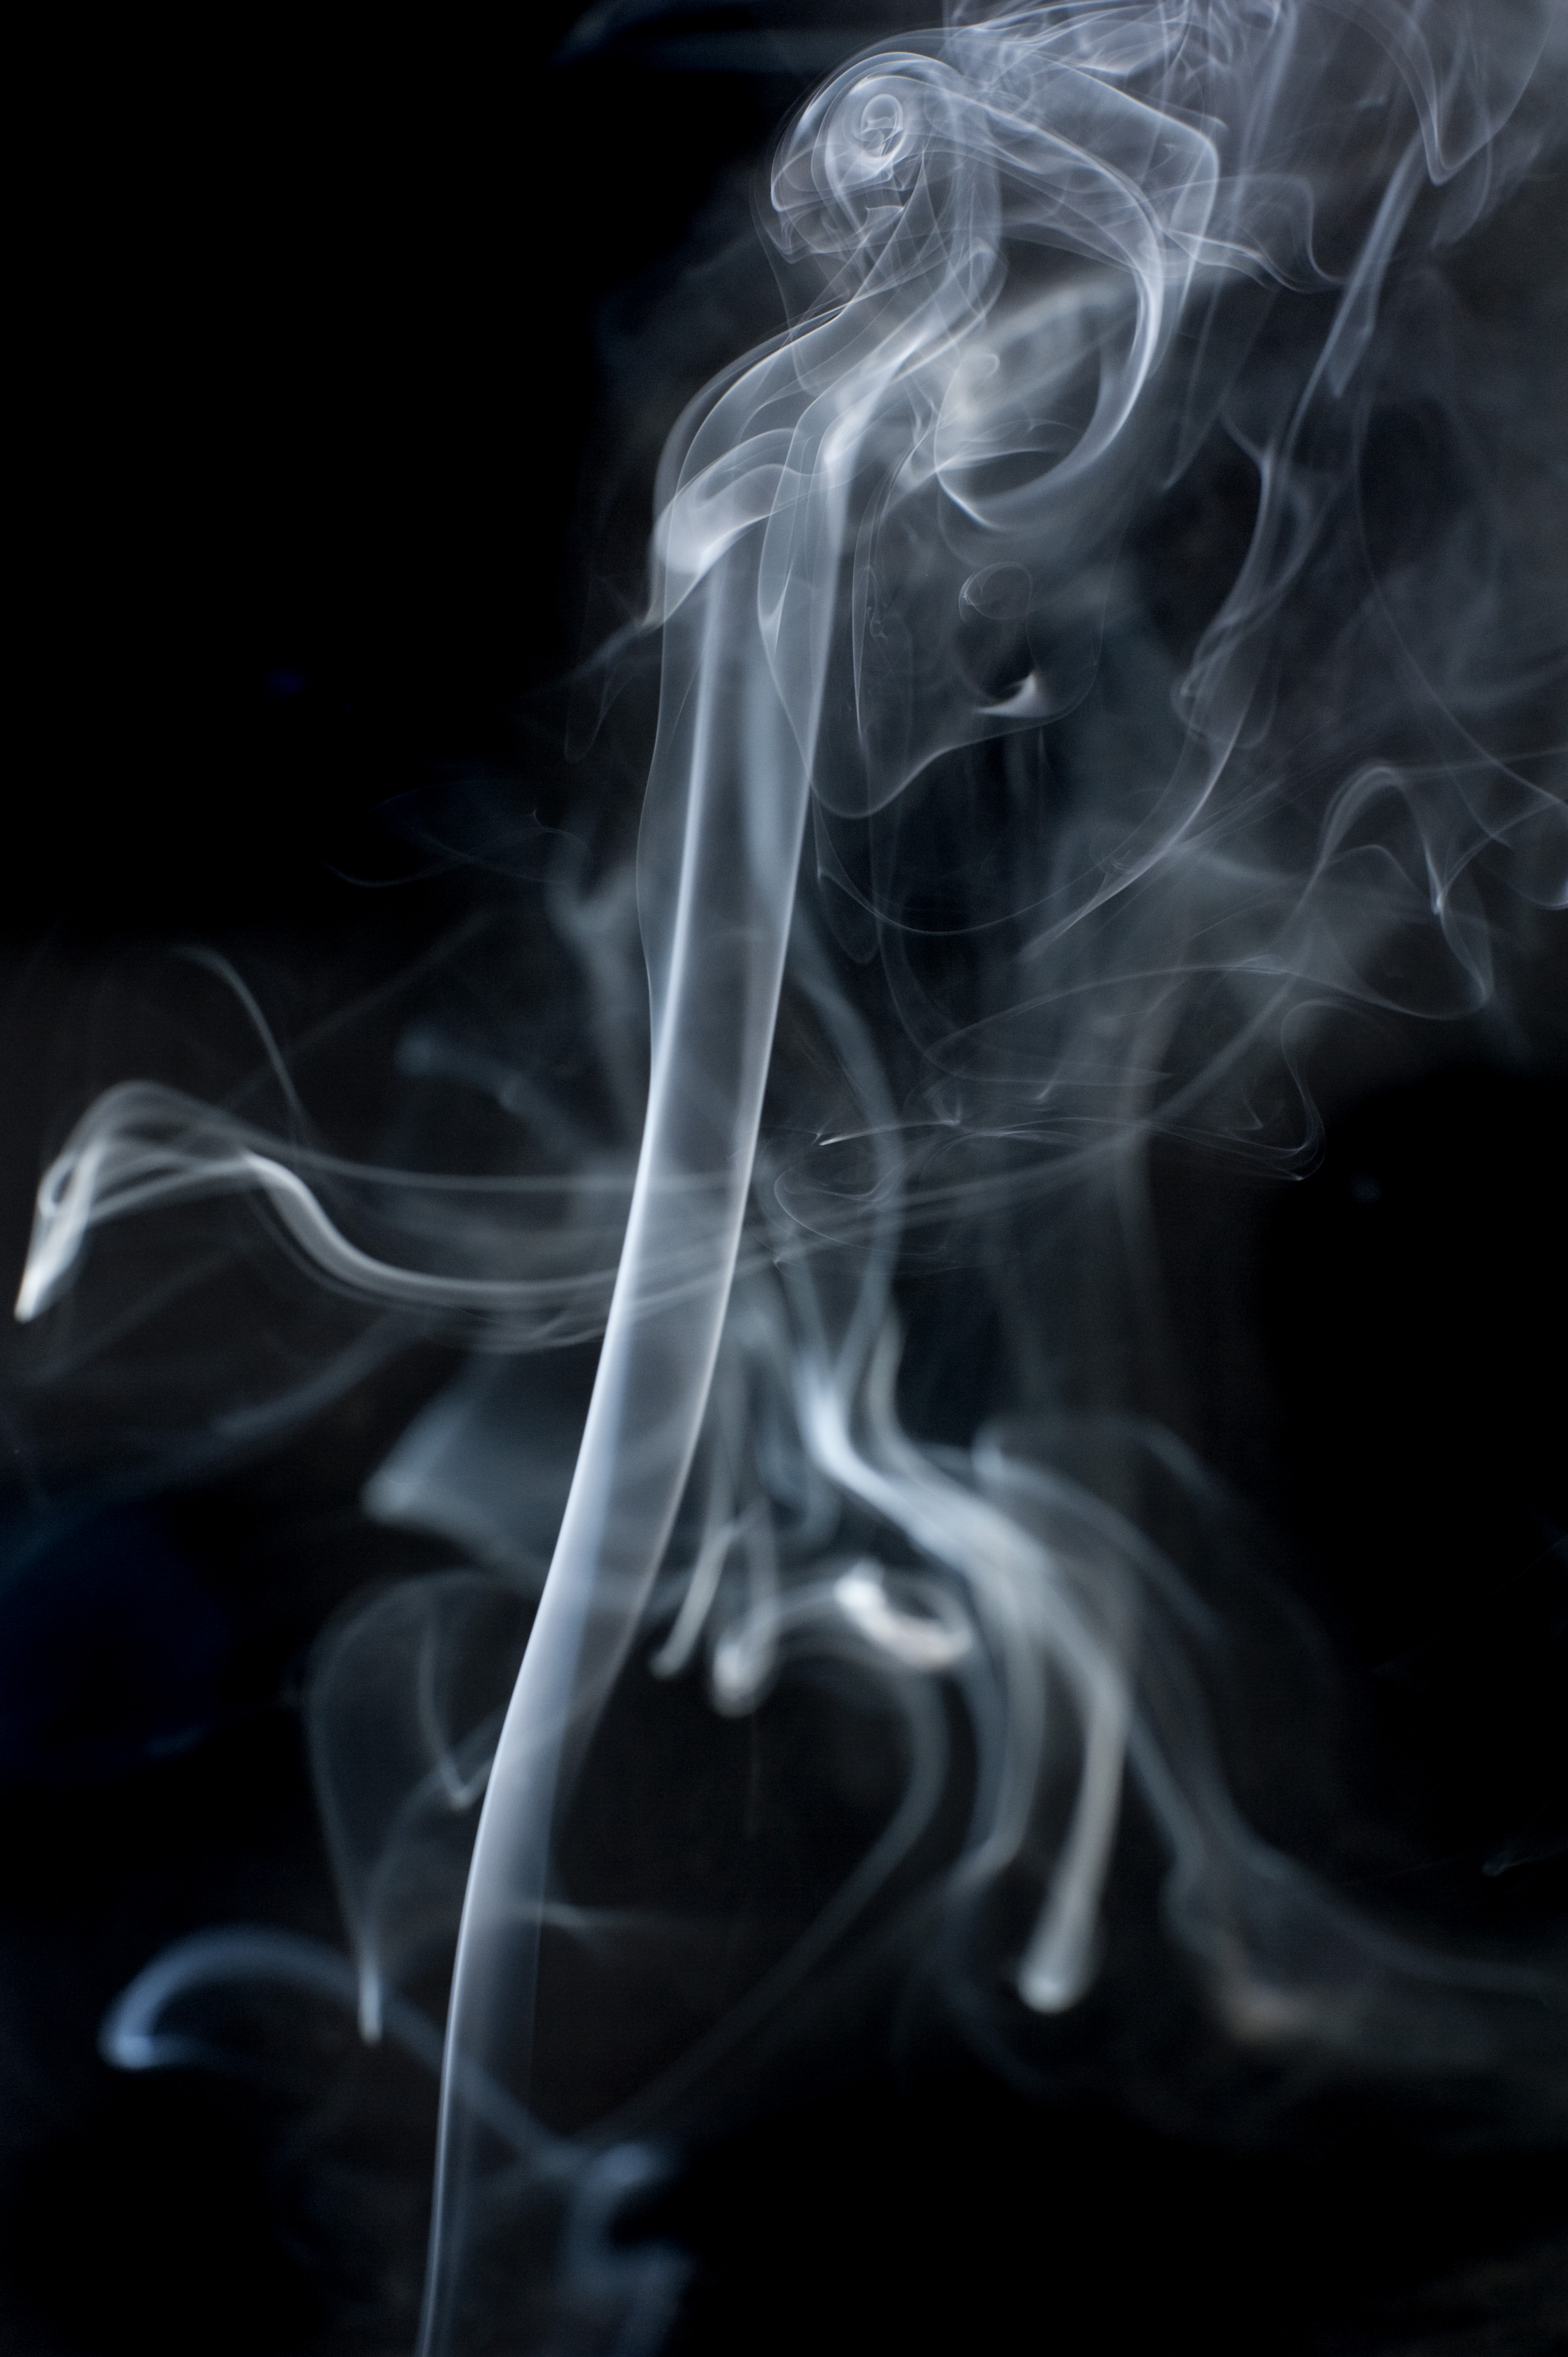 abstract vapours of smoke patterns on a black backdrop